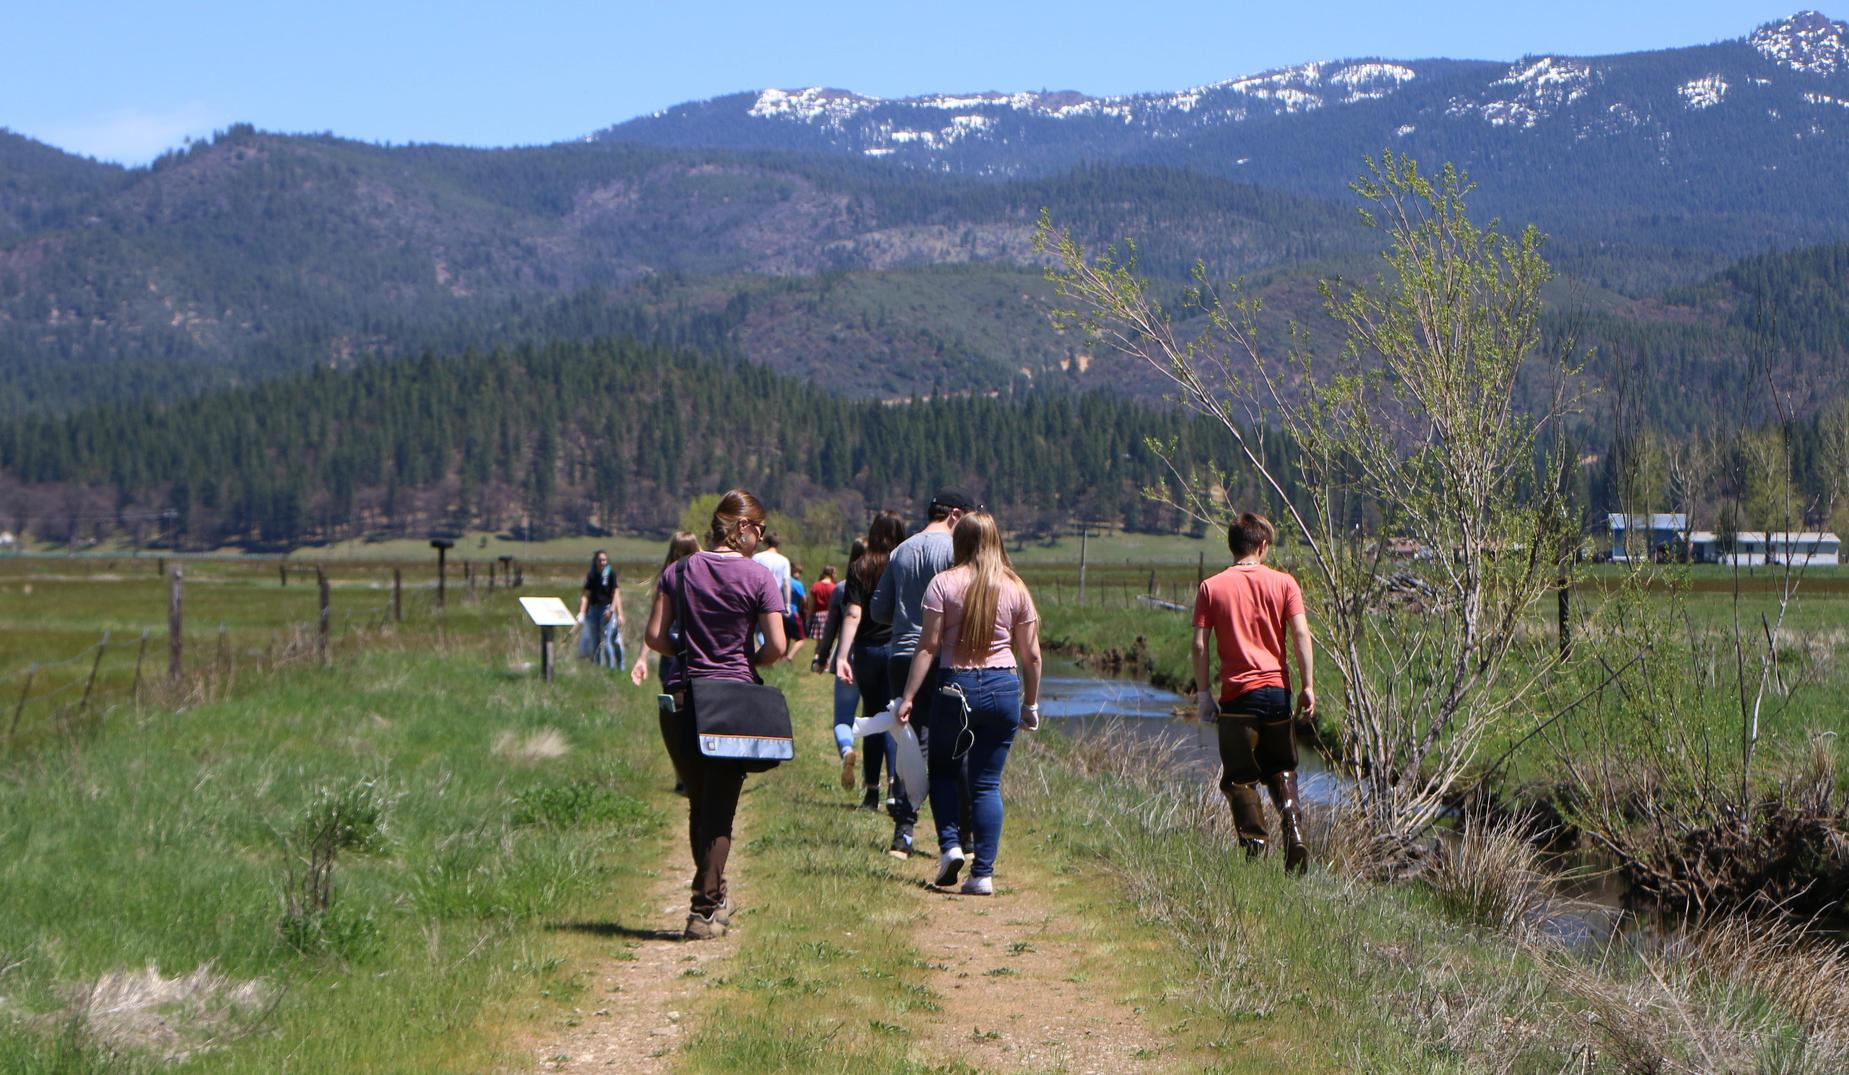 Students walking in the valley